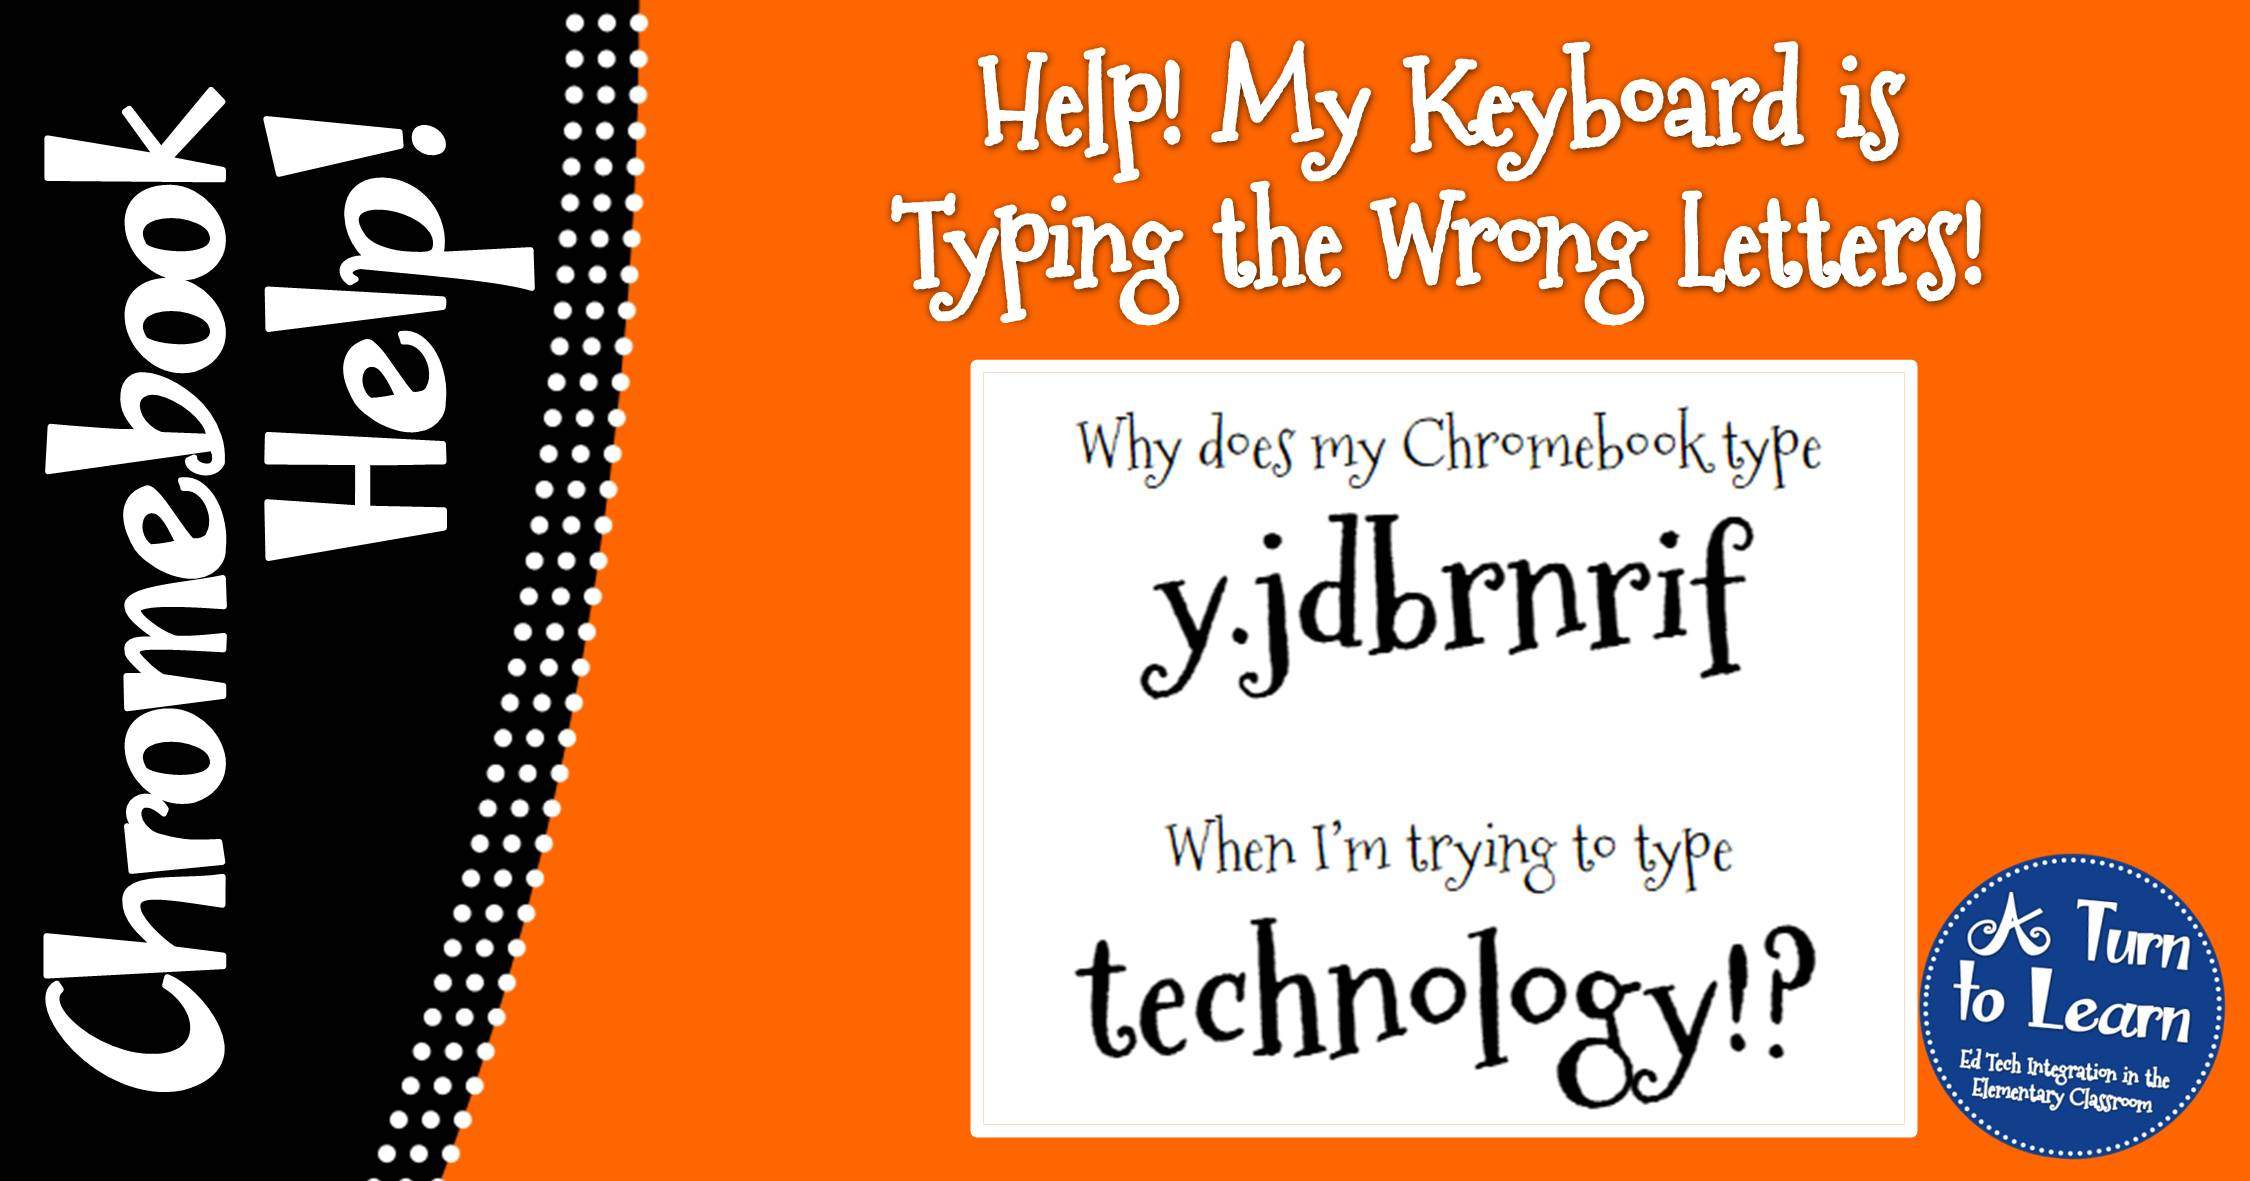 Hp chromebook keyboard typing wrong letters